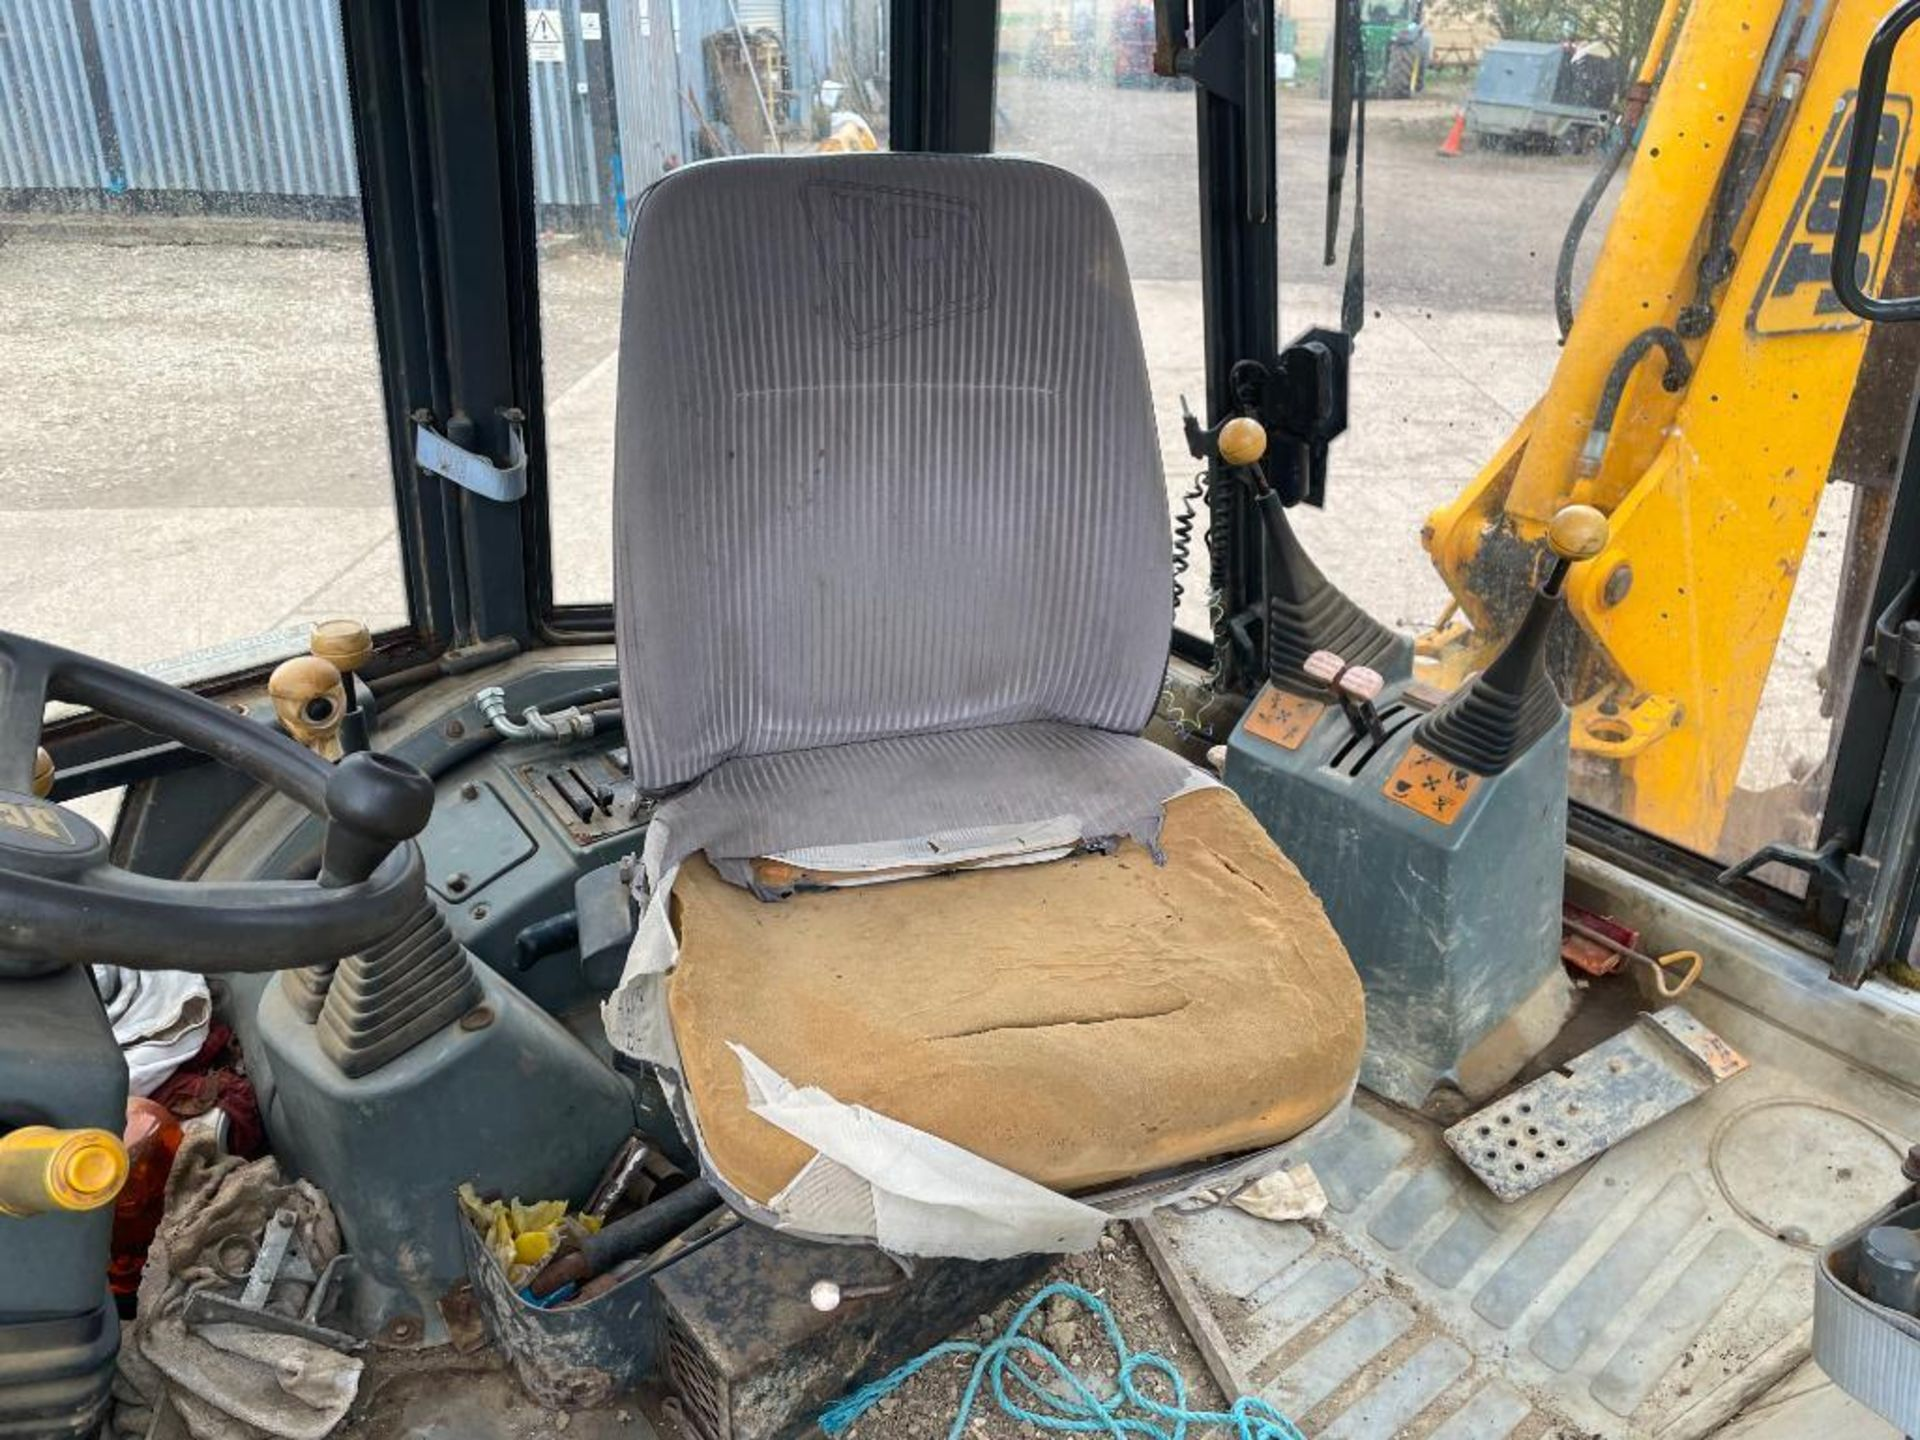 1993 JCB 3CX Sitemaster 4wd back hoe loader with 3 in 1 bucket on 10.5/80-18 front and 18.4-26 rear - Image 11 of 14